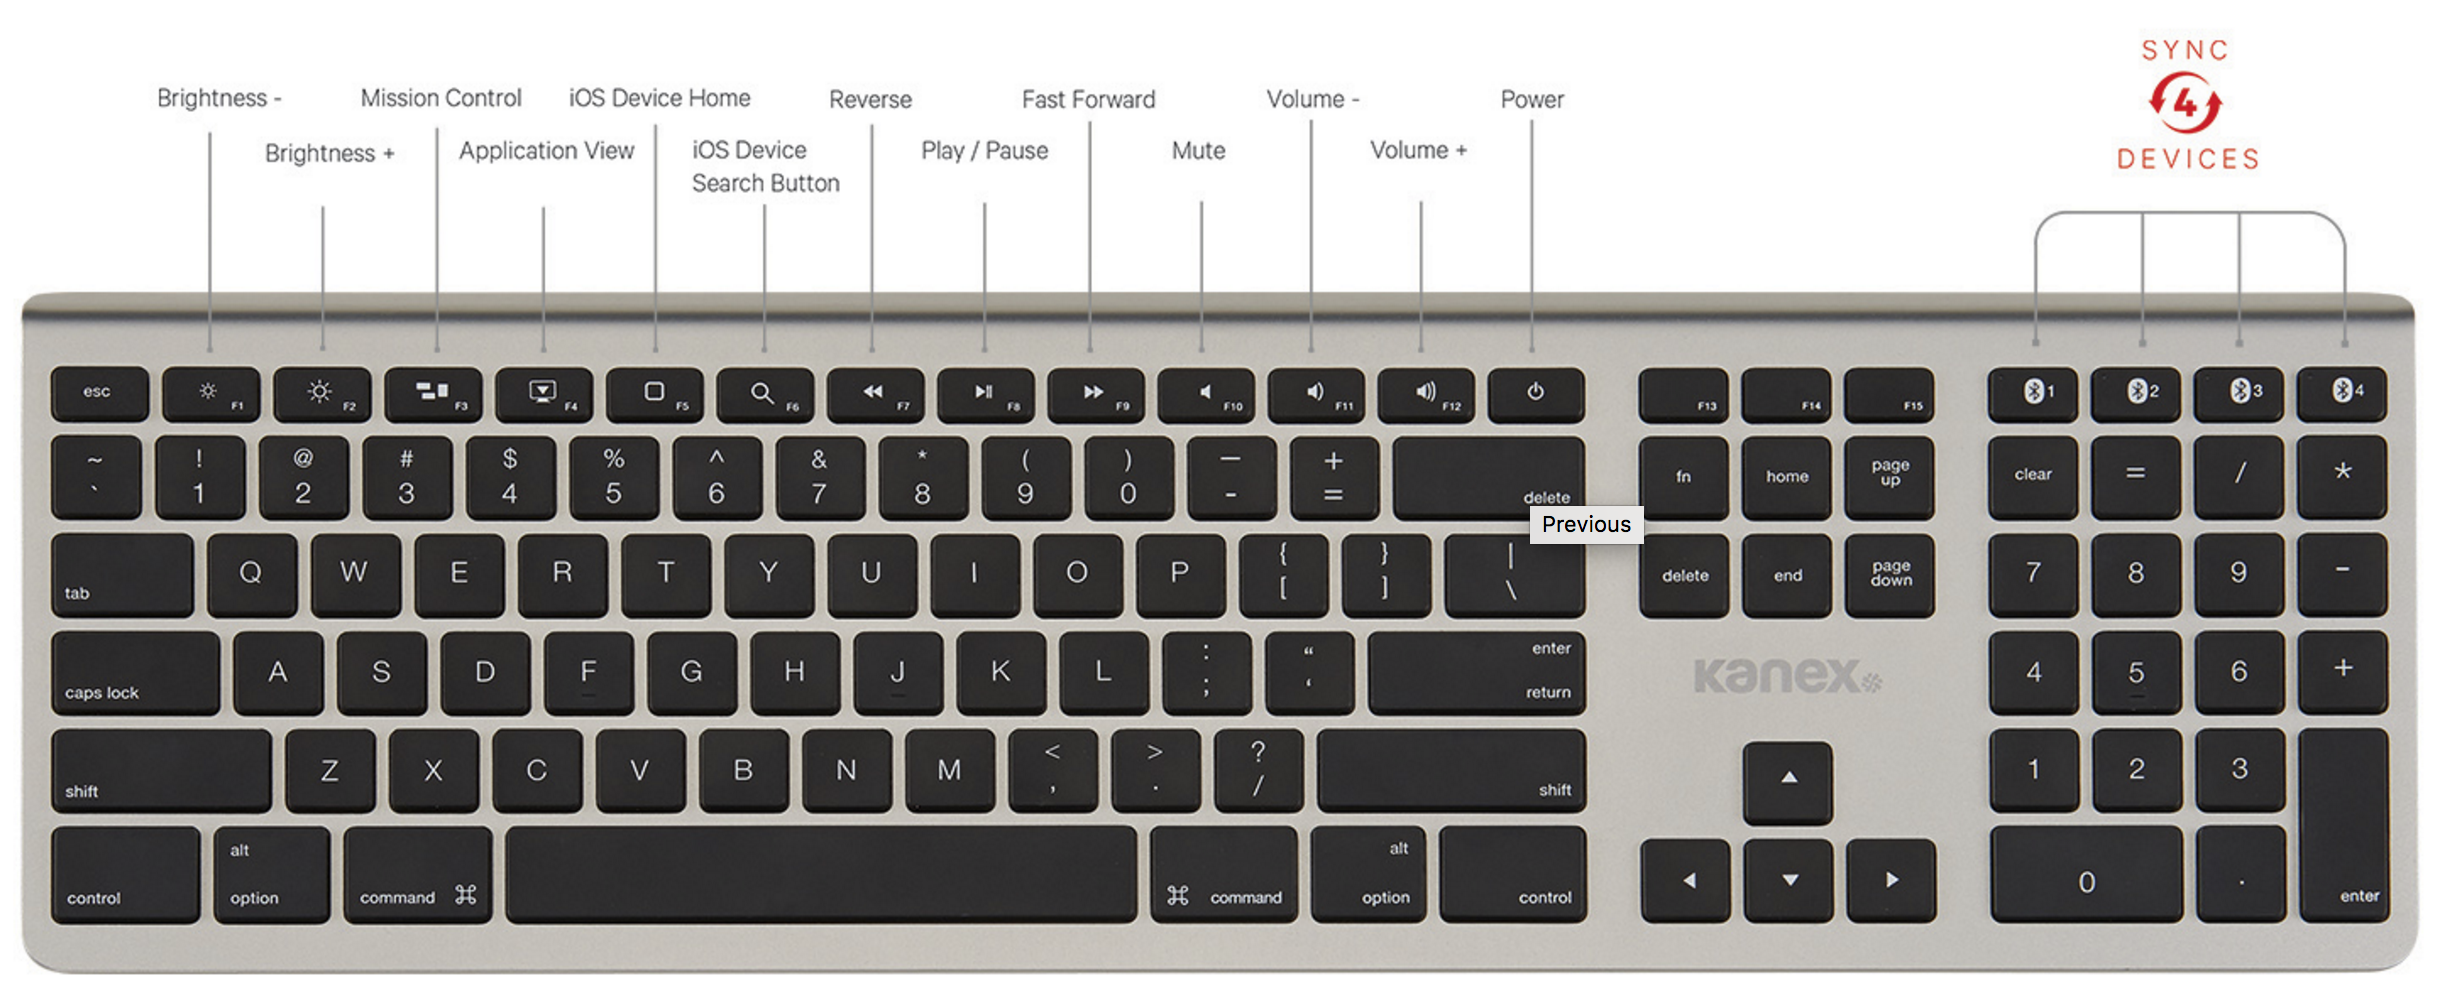 how to add new keyboard on mac